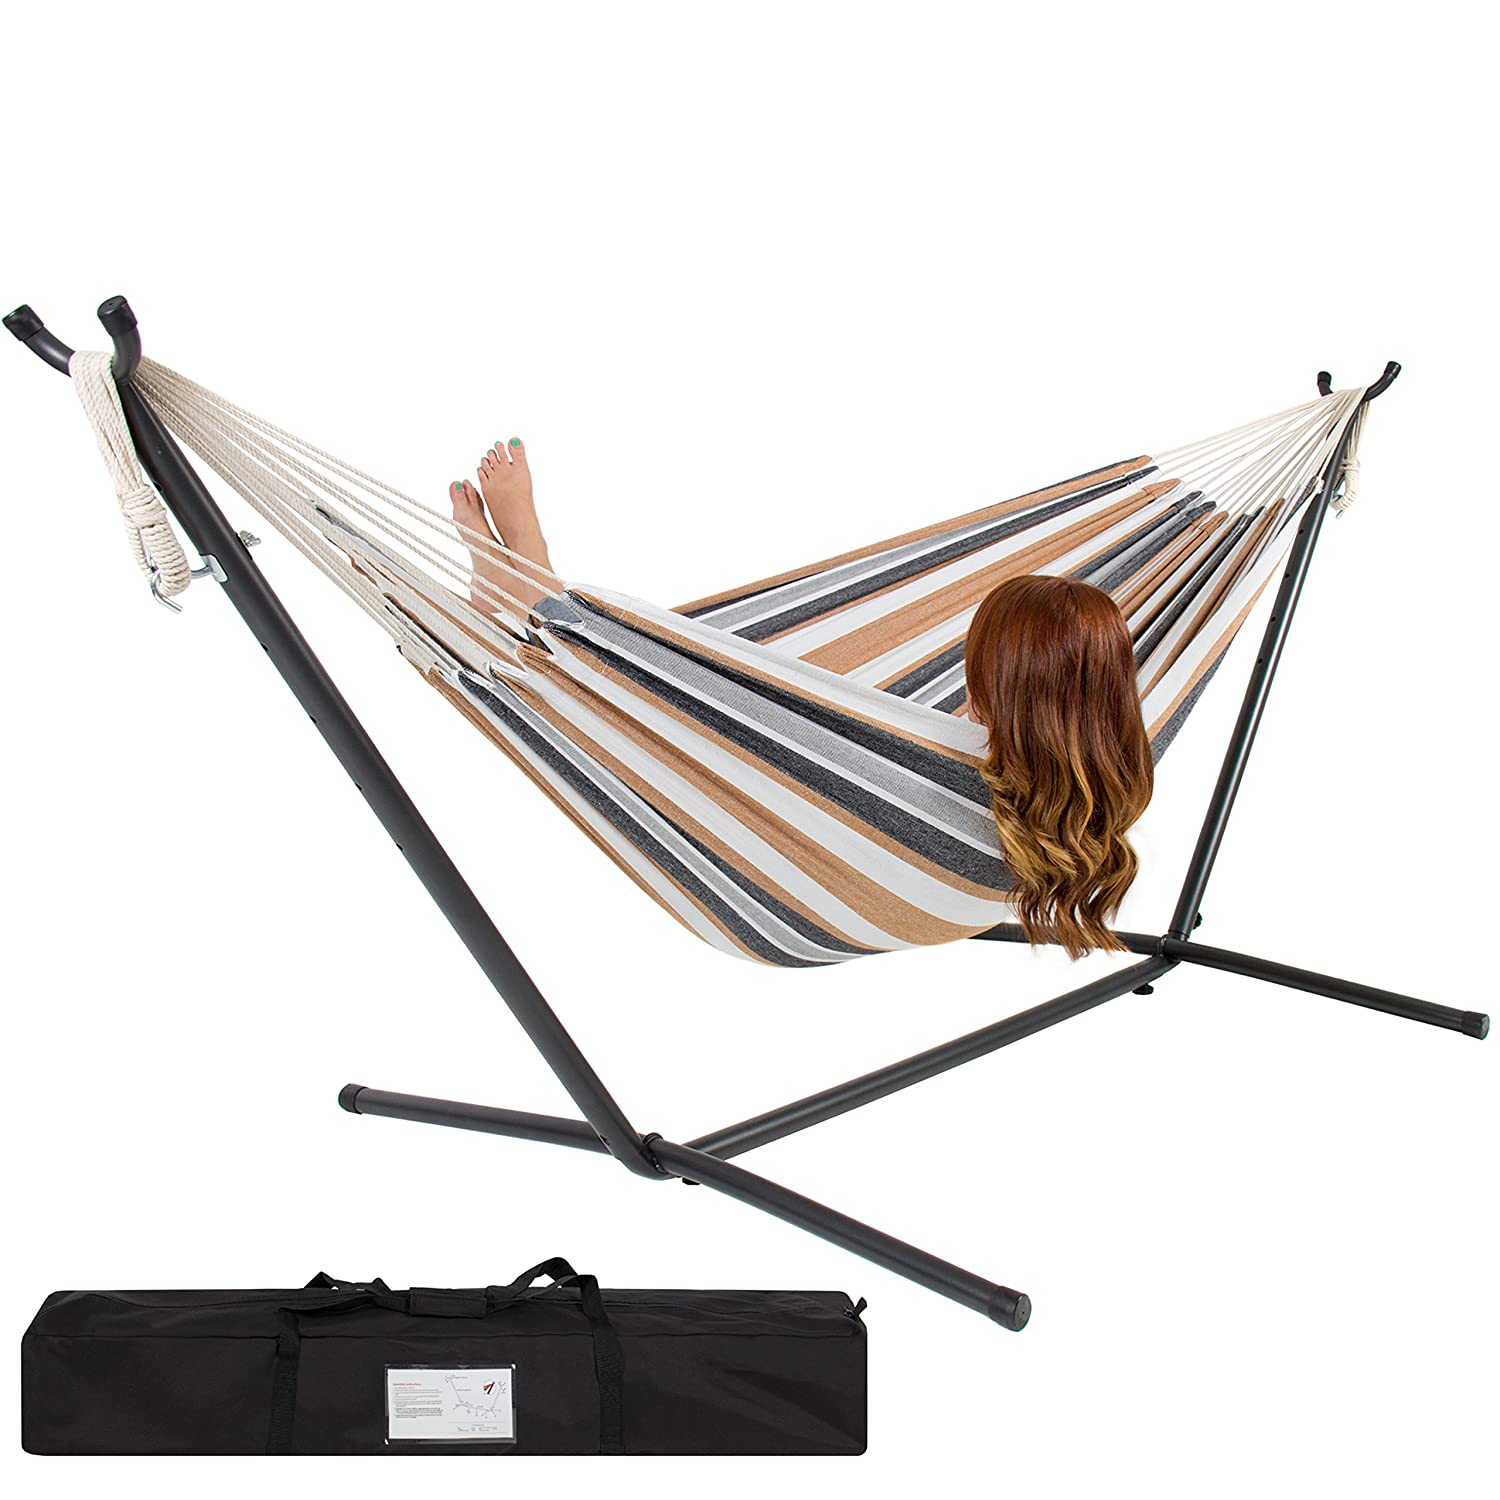 Amazon.com: Hammocks, Stands & Accessories: Patio, Lawn & Garden ...